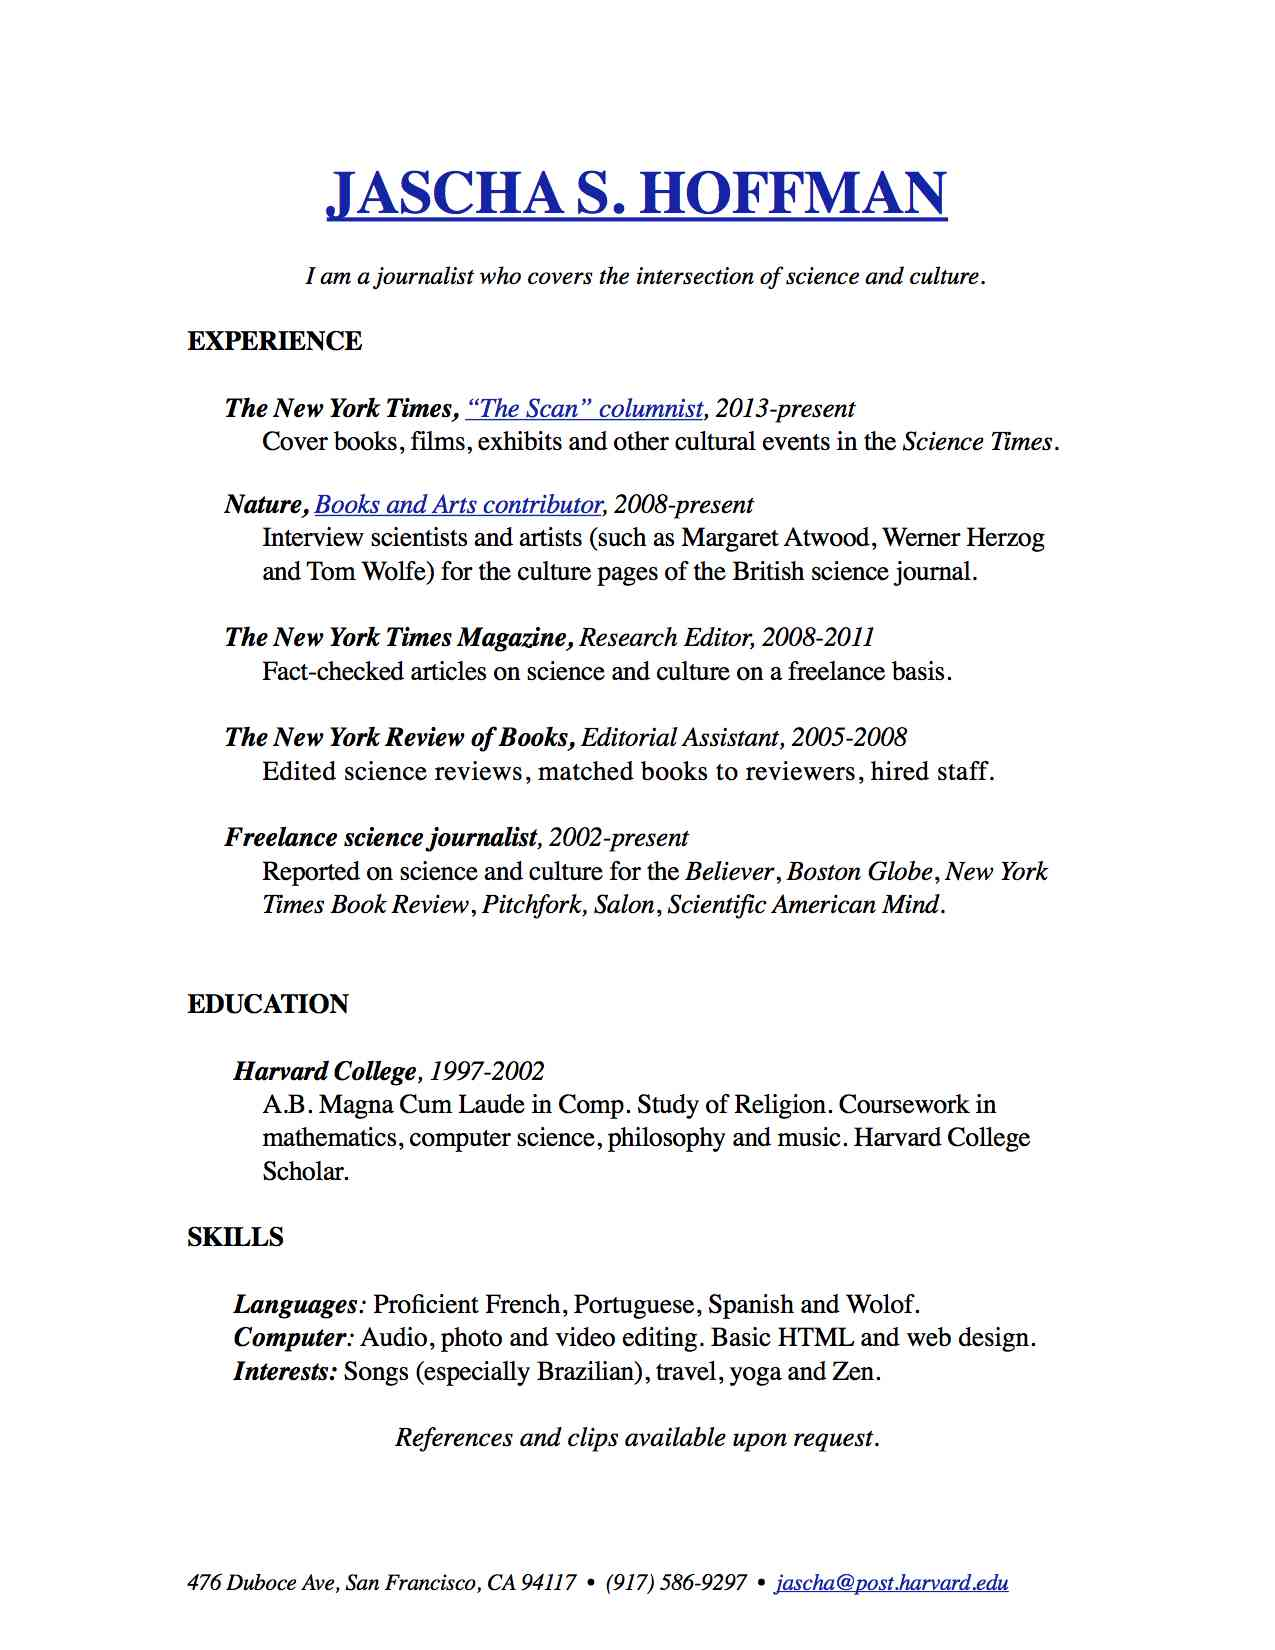 JaschaHoffmanResume2013crop.jpg